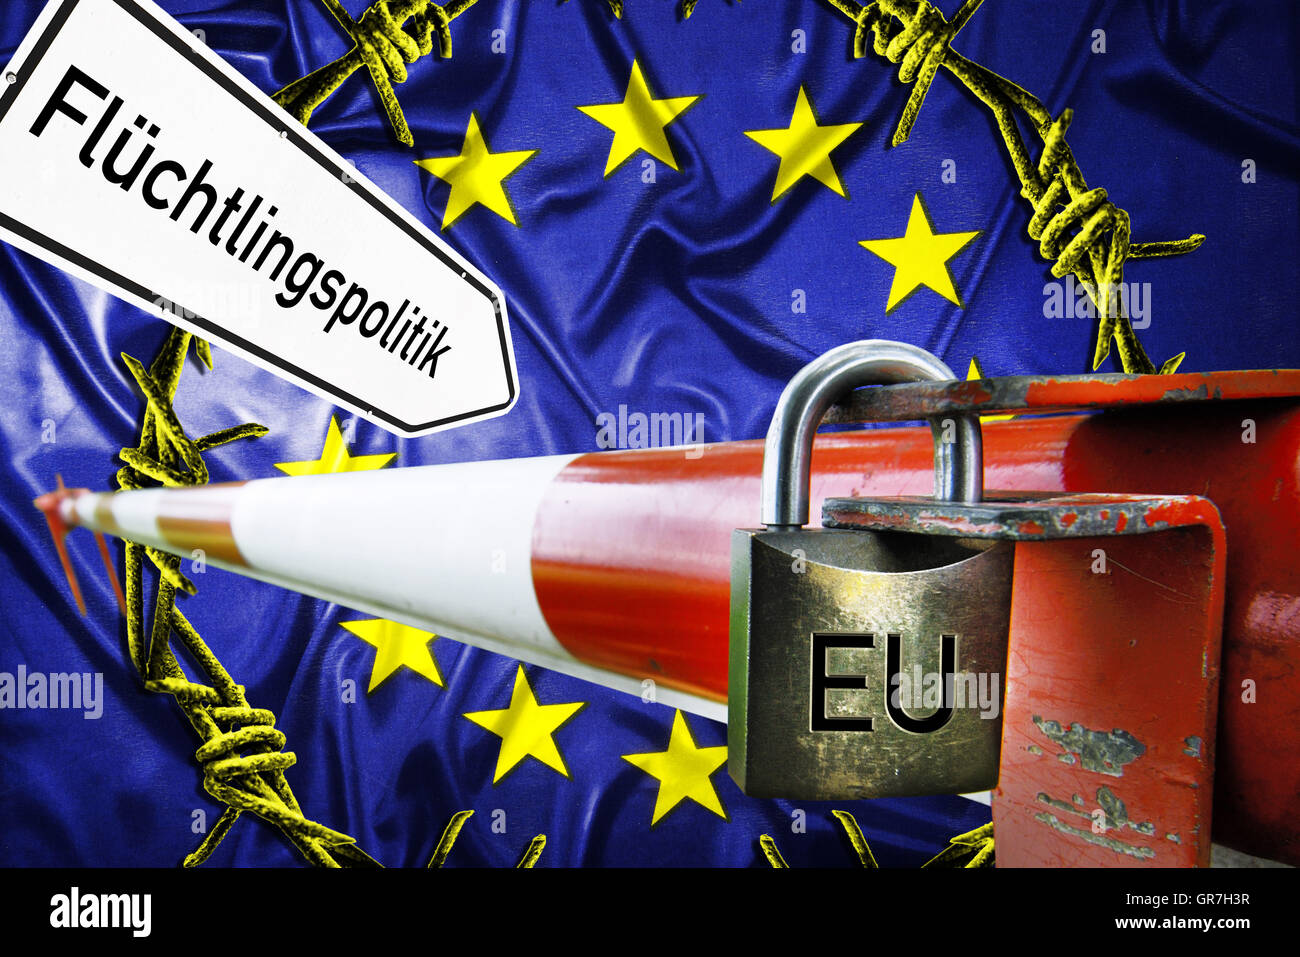 Flag Of The Eu, Barbwire And Border Barrier, Refugee Crisis - Stock Image